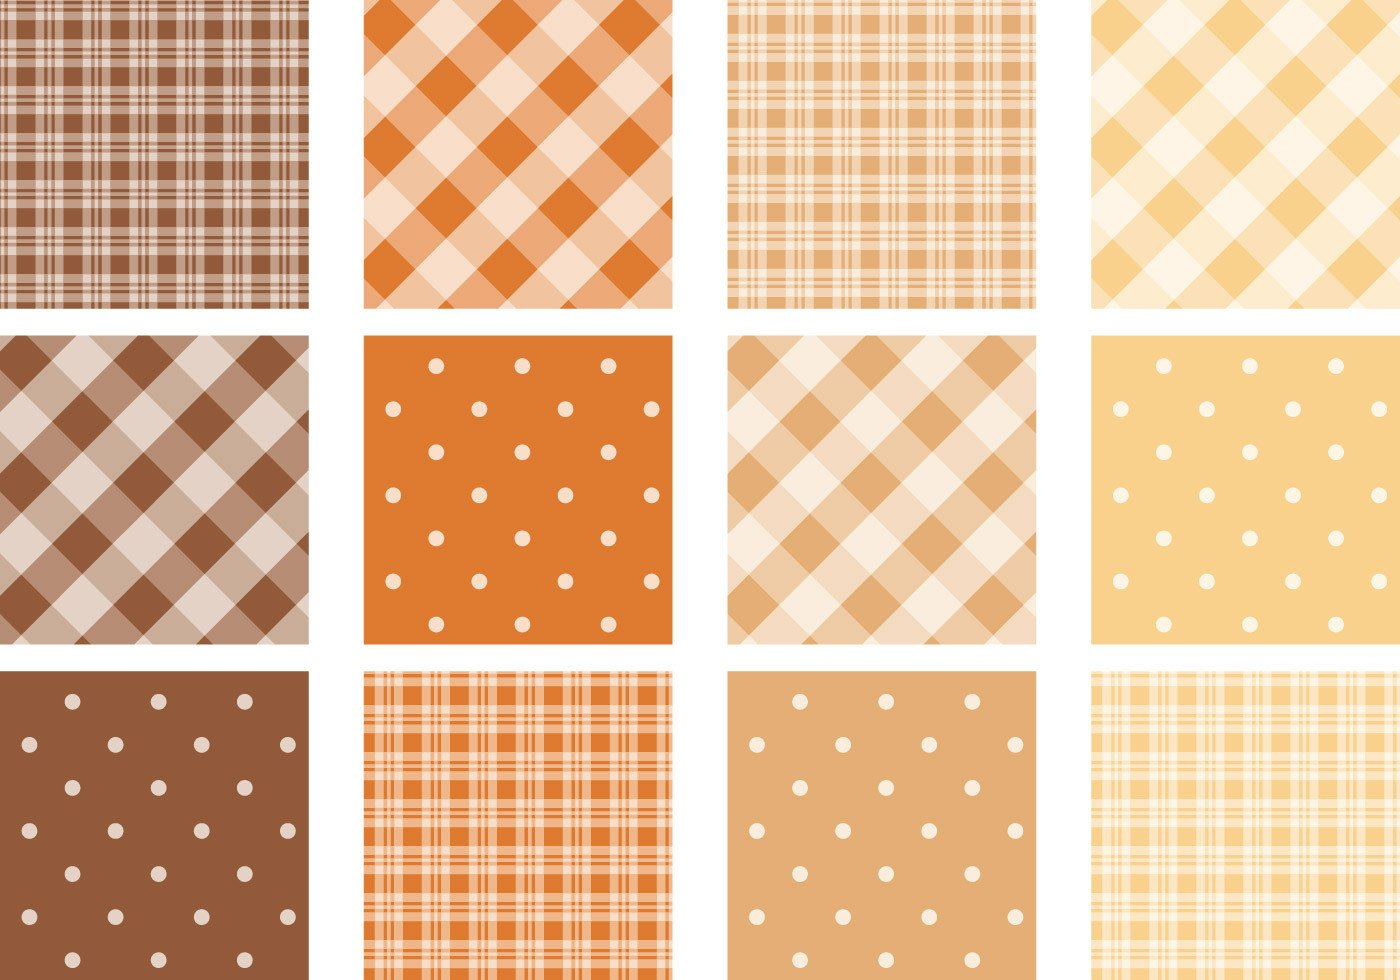 Polka Dot Brush Photoshop Fall Colored Plaid and Polka Dot Pattern Pack Free